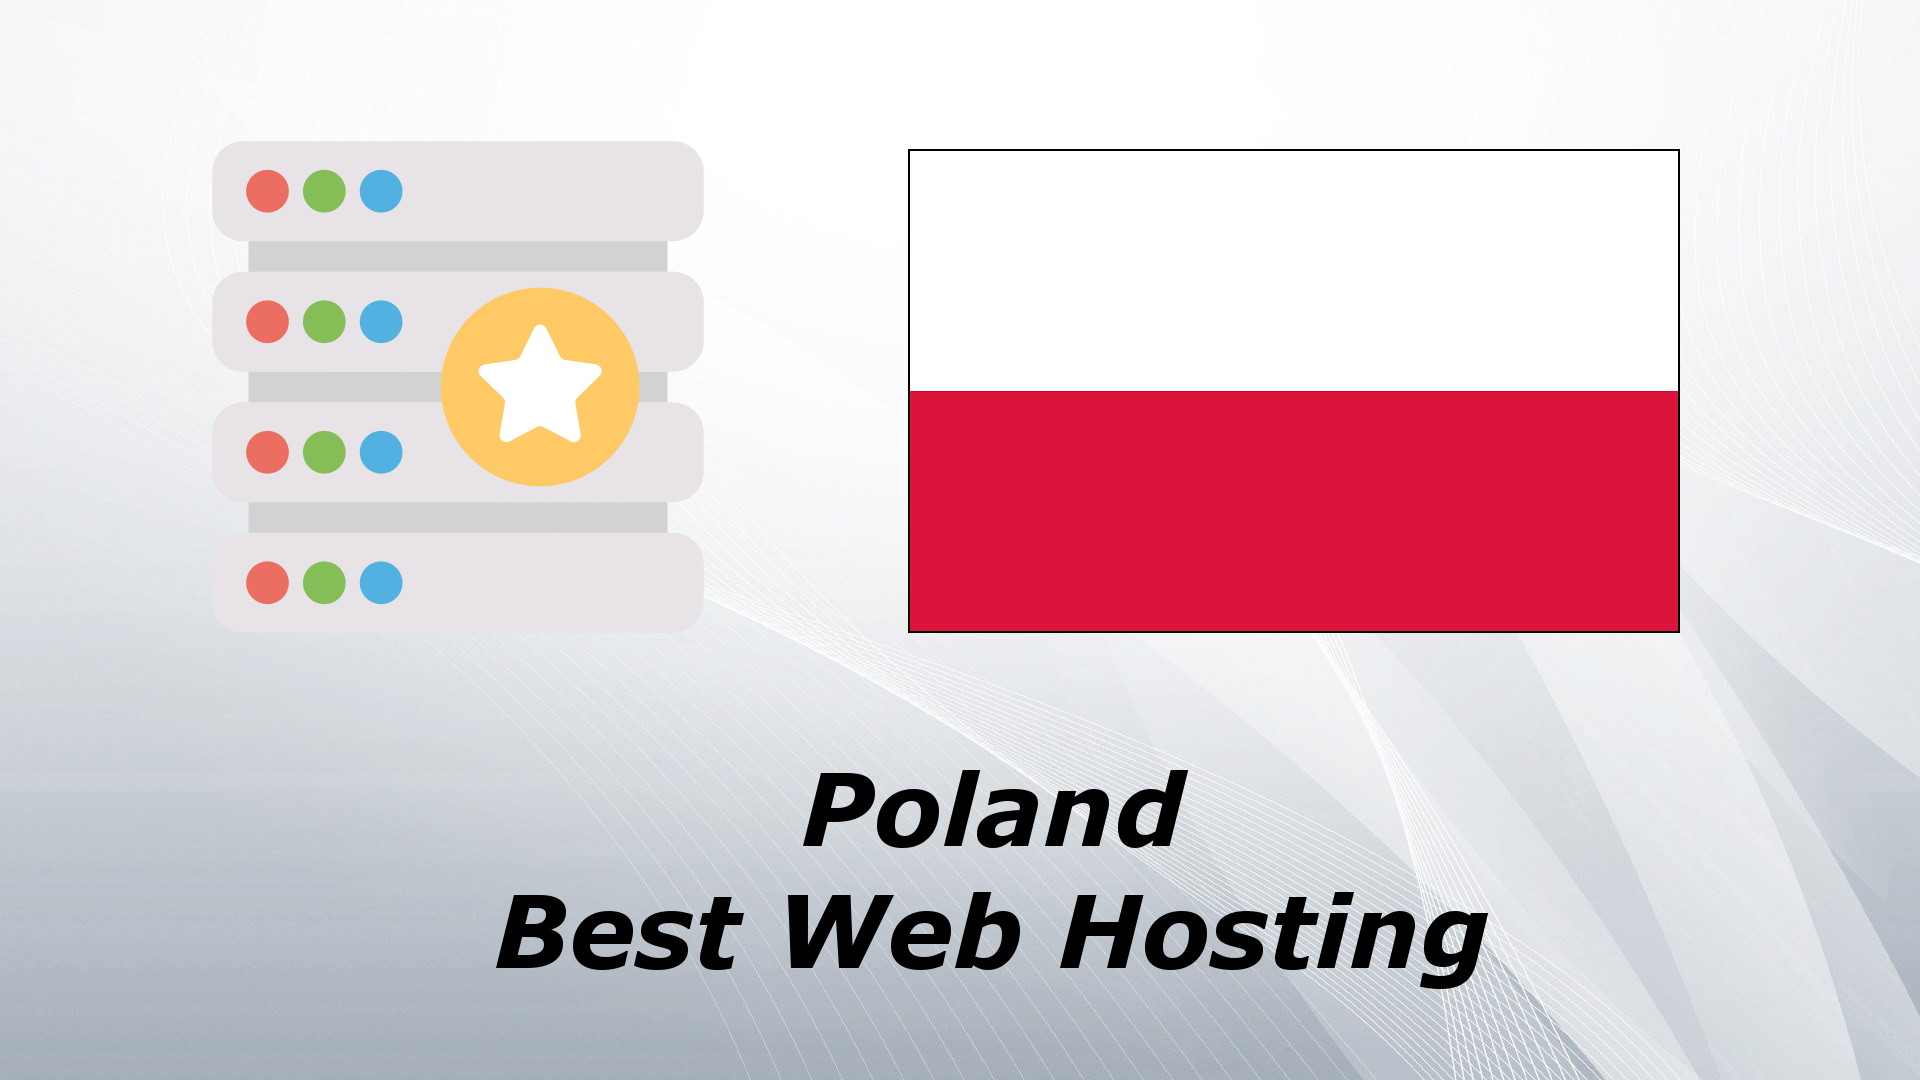 Poland Best Web Hosting